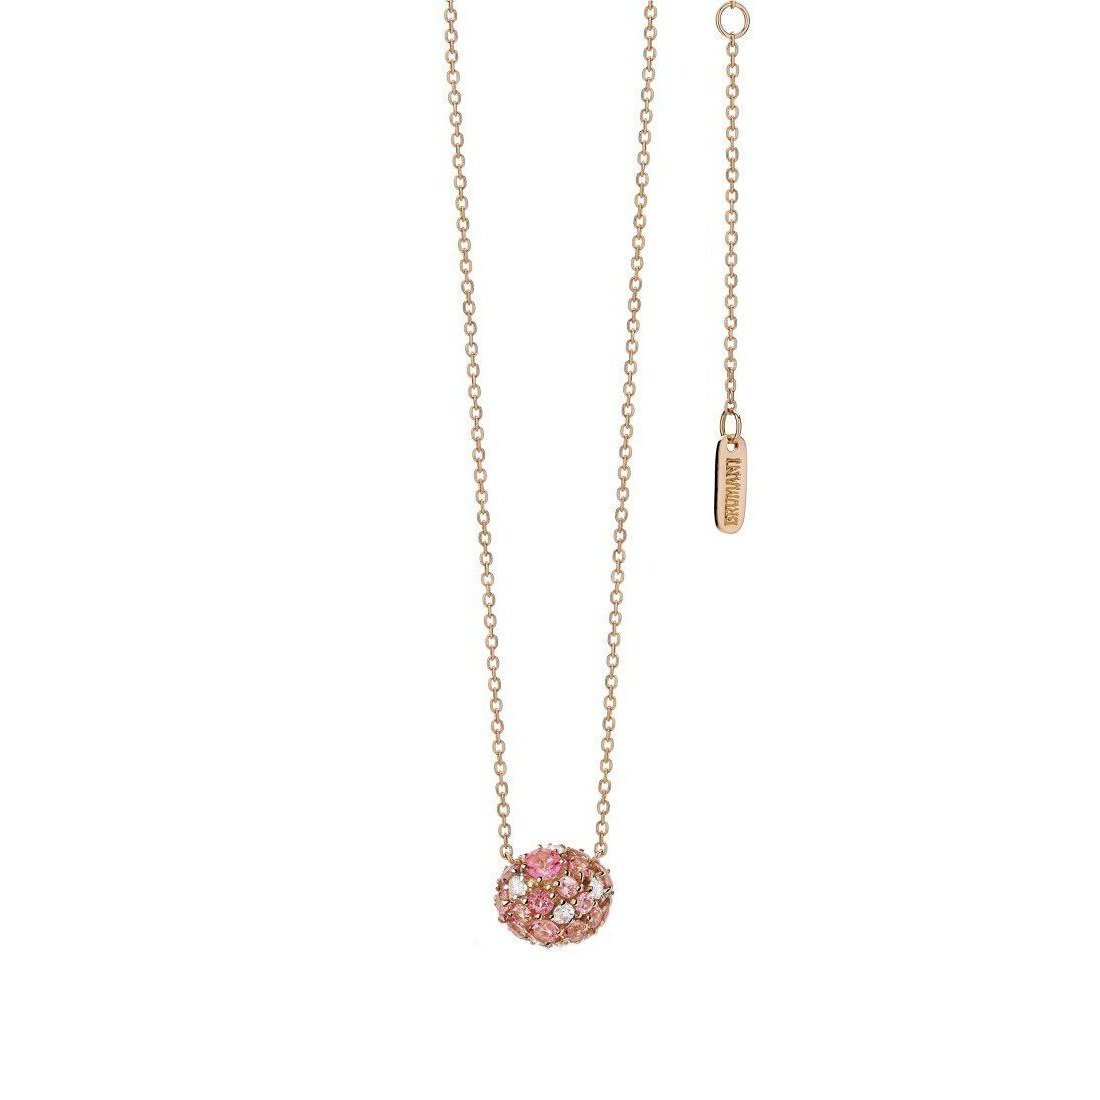 Brumani Baobab Bubbles Necklace in Rose Gold dbp2ByFYhY